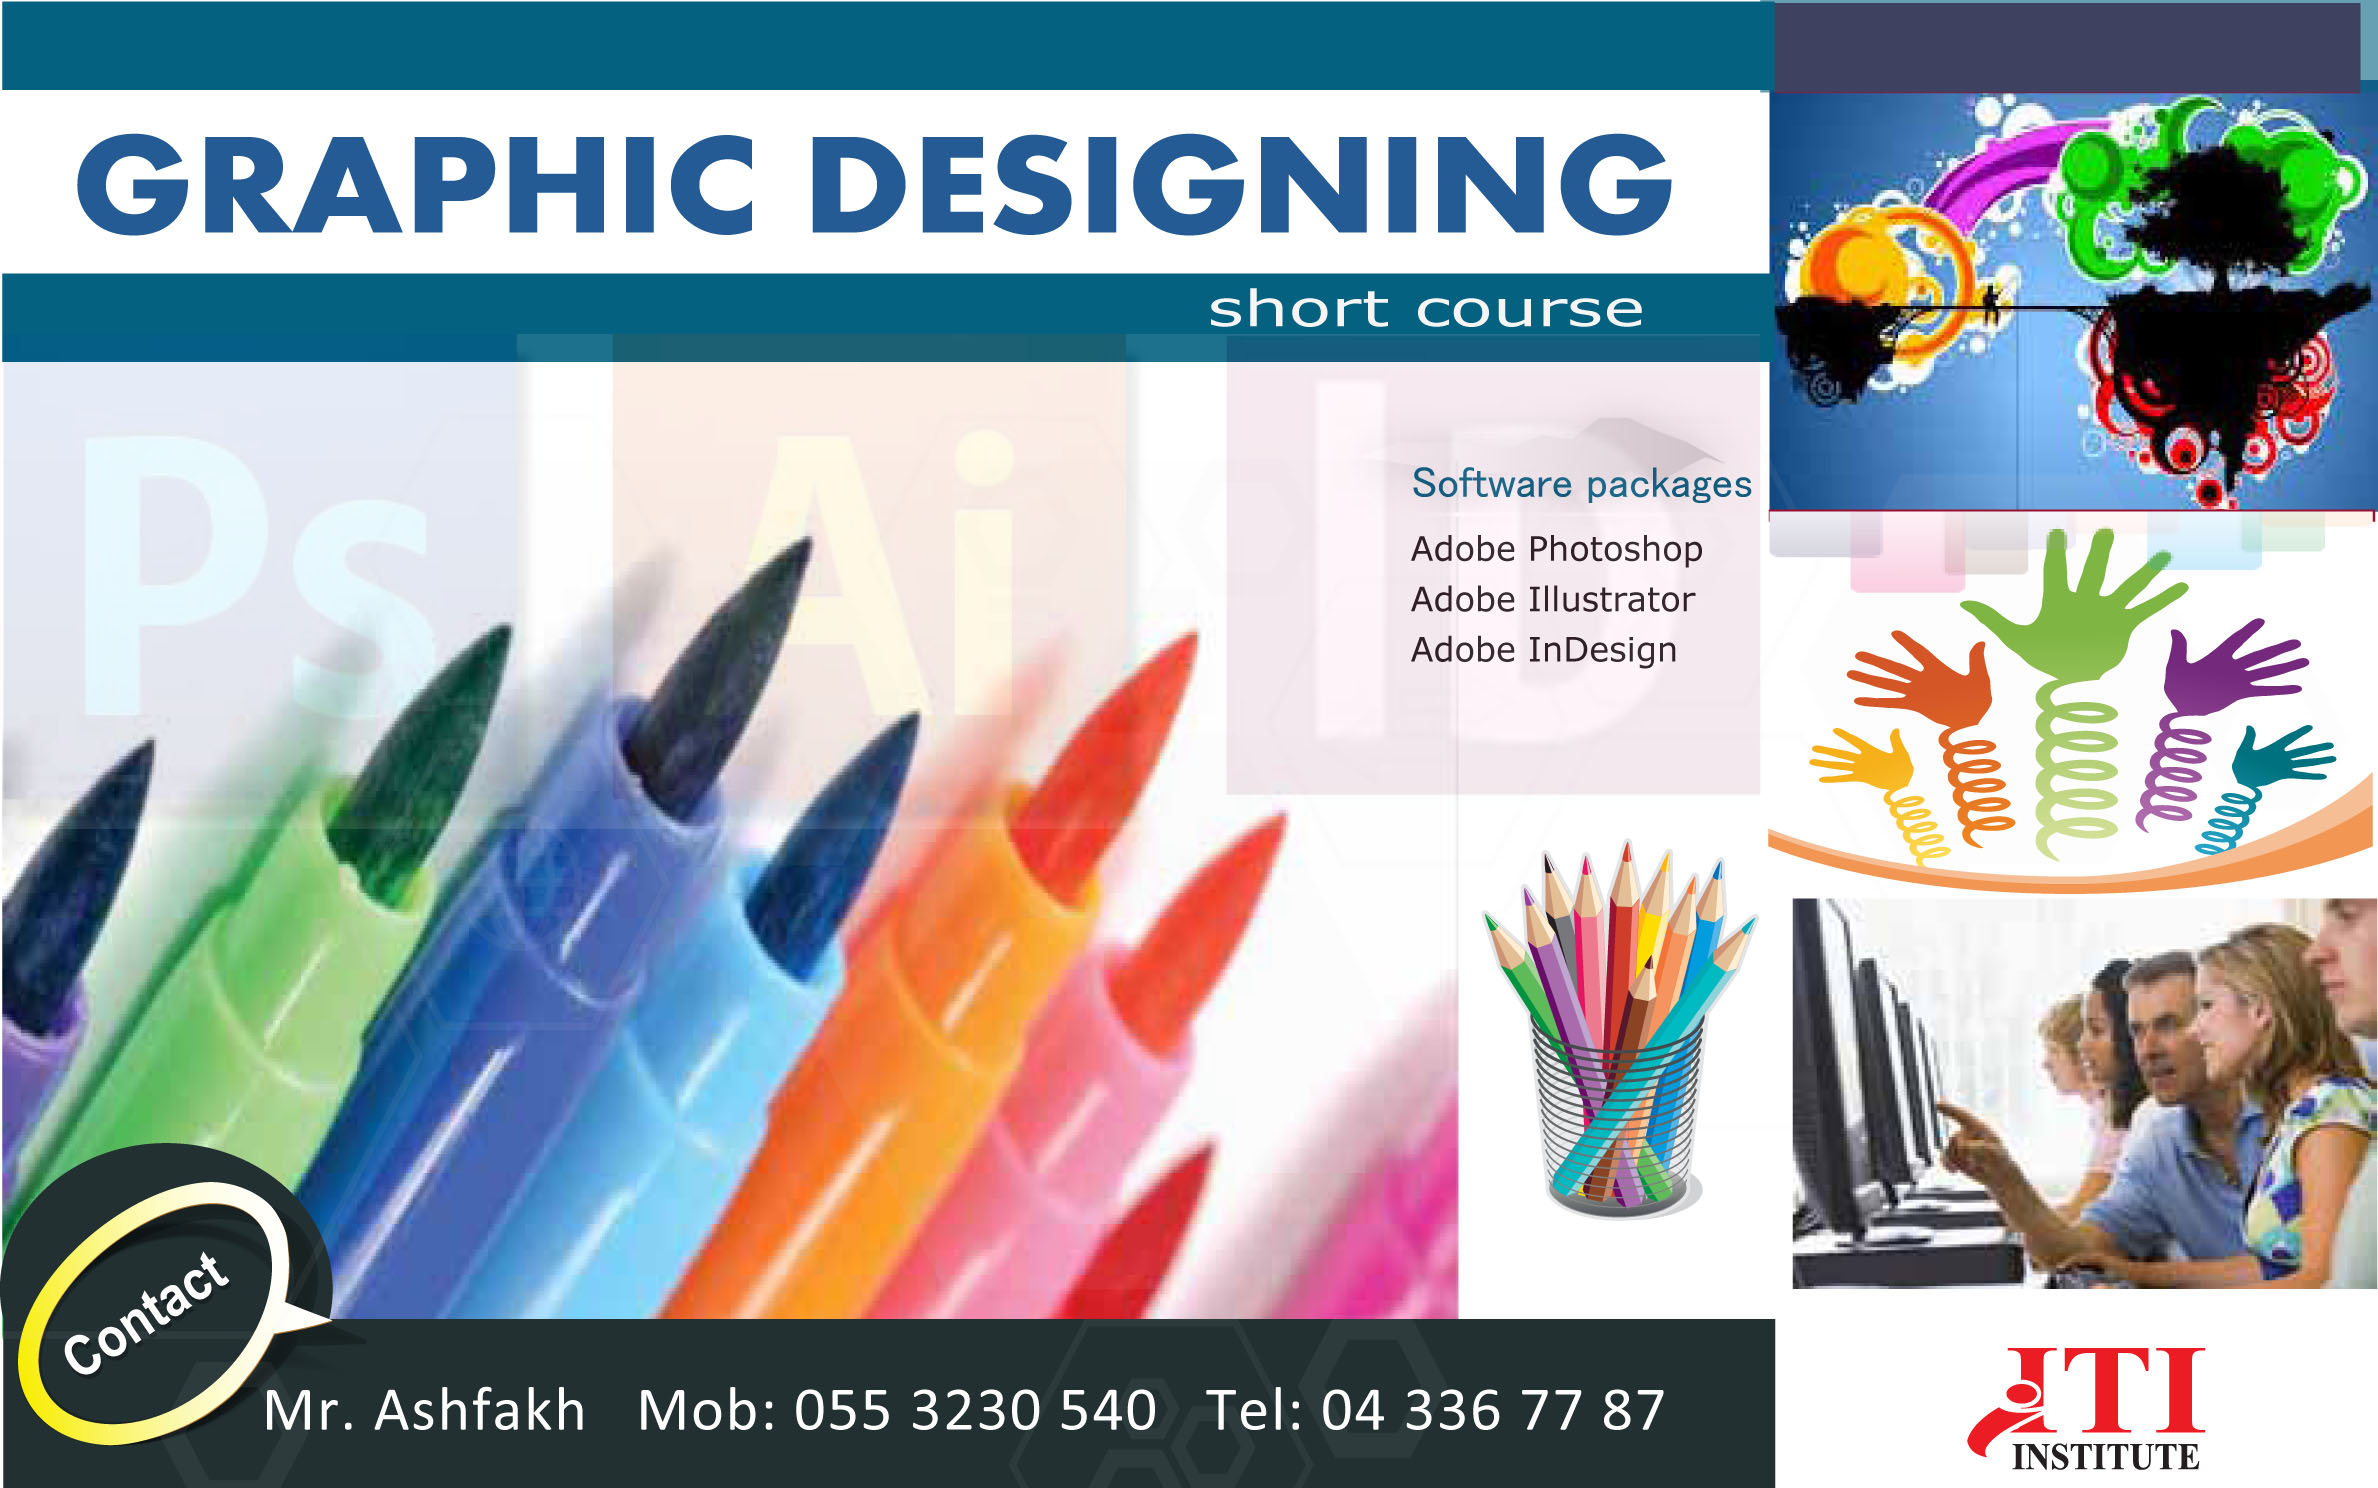 Graphic Designing Training in Dubai